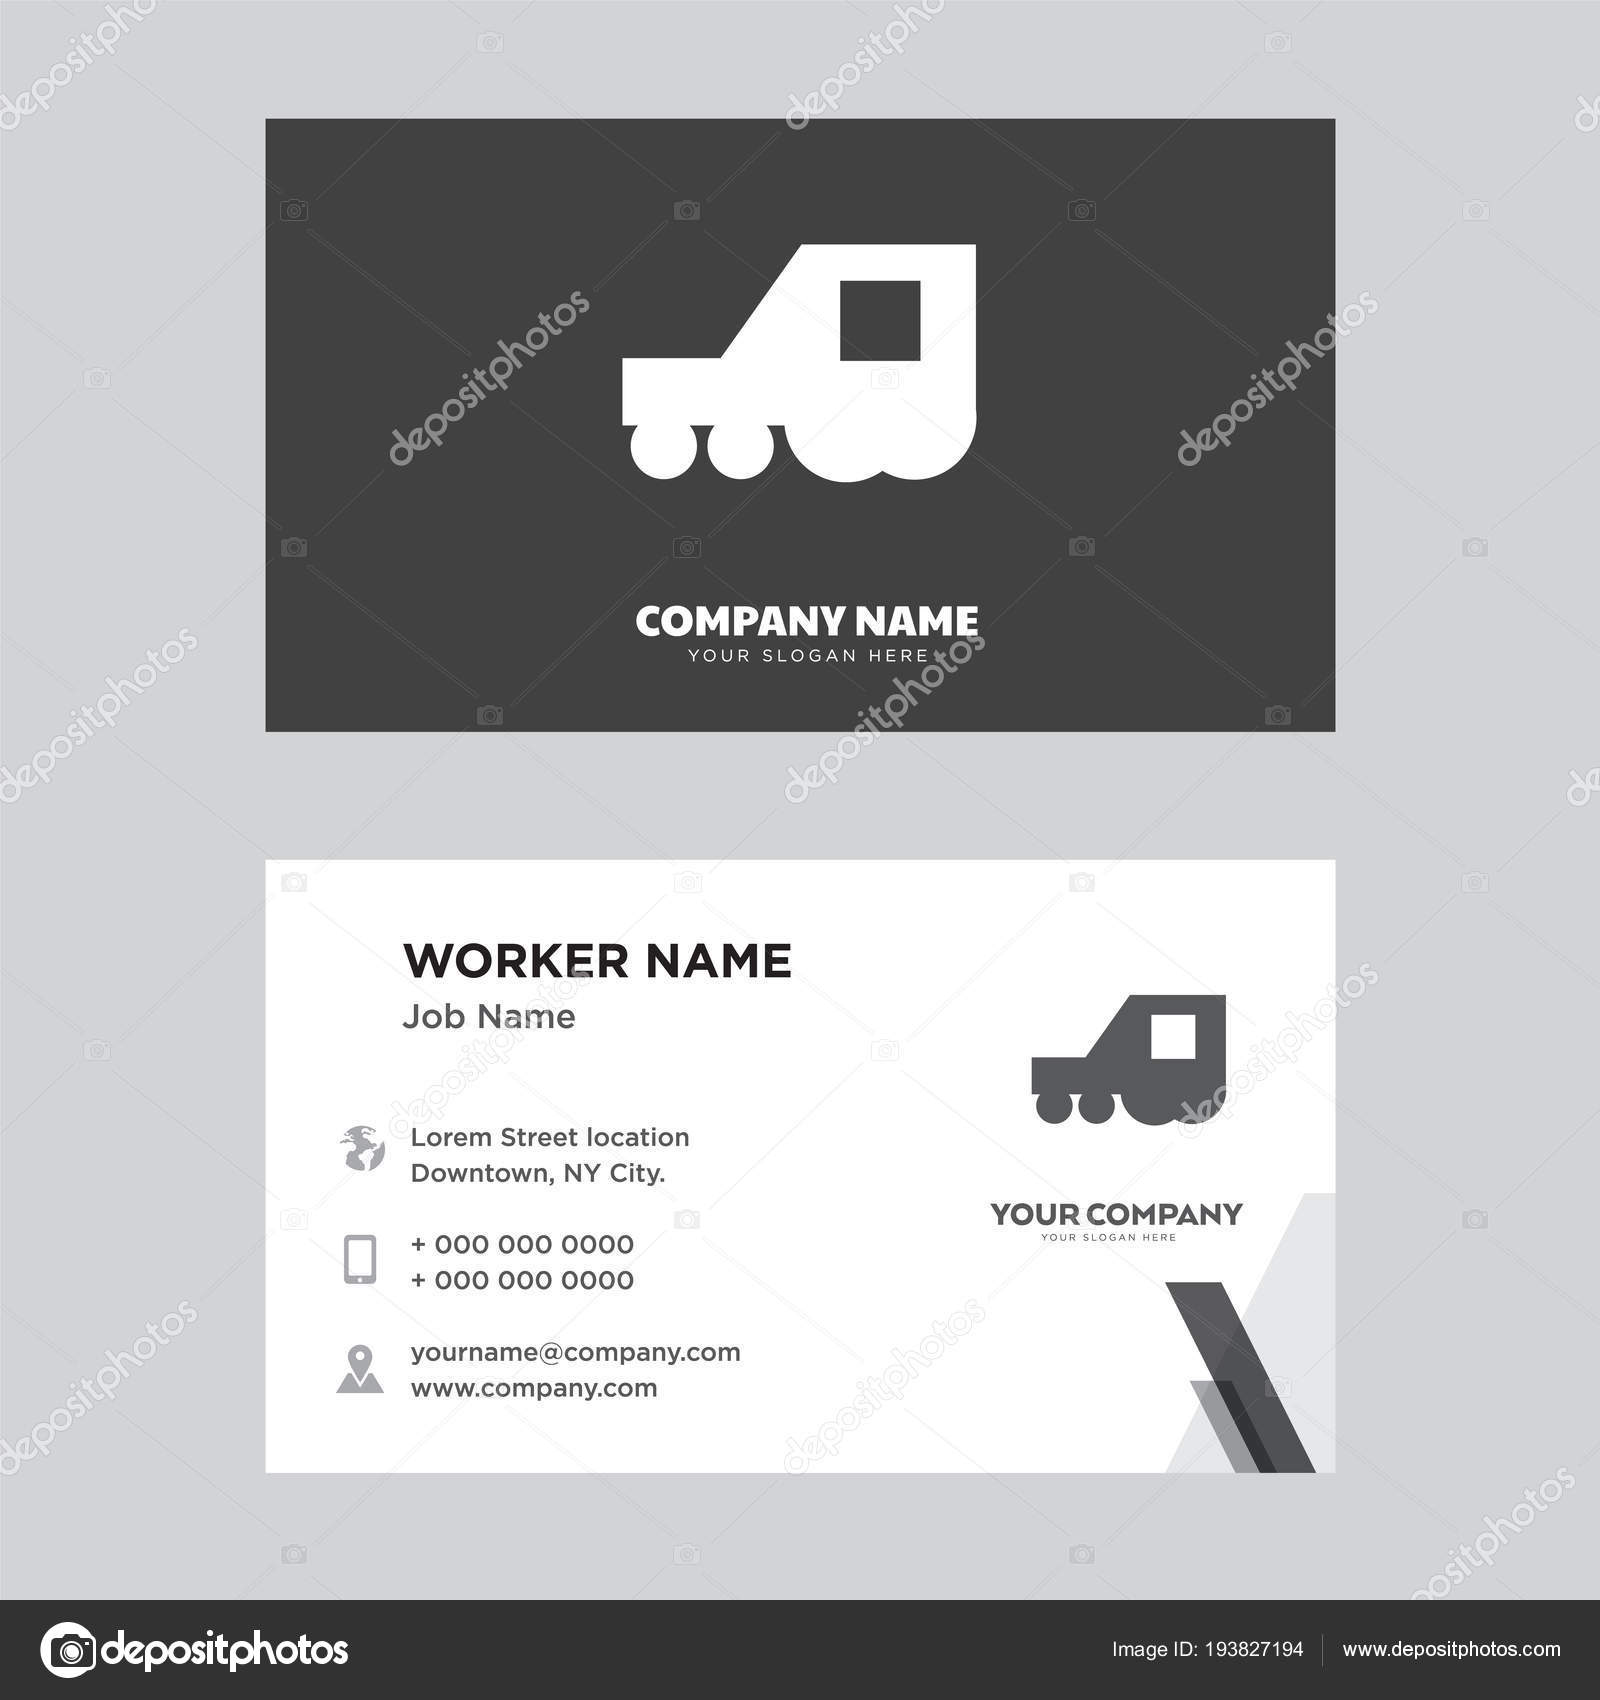 Tractor business card design stock vector vectorbest 193827194 tractor business card design stock vector colourmoves